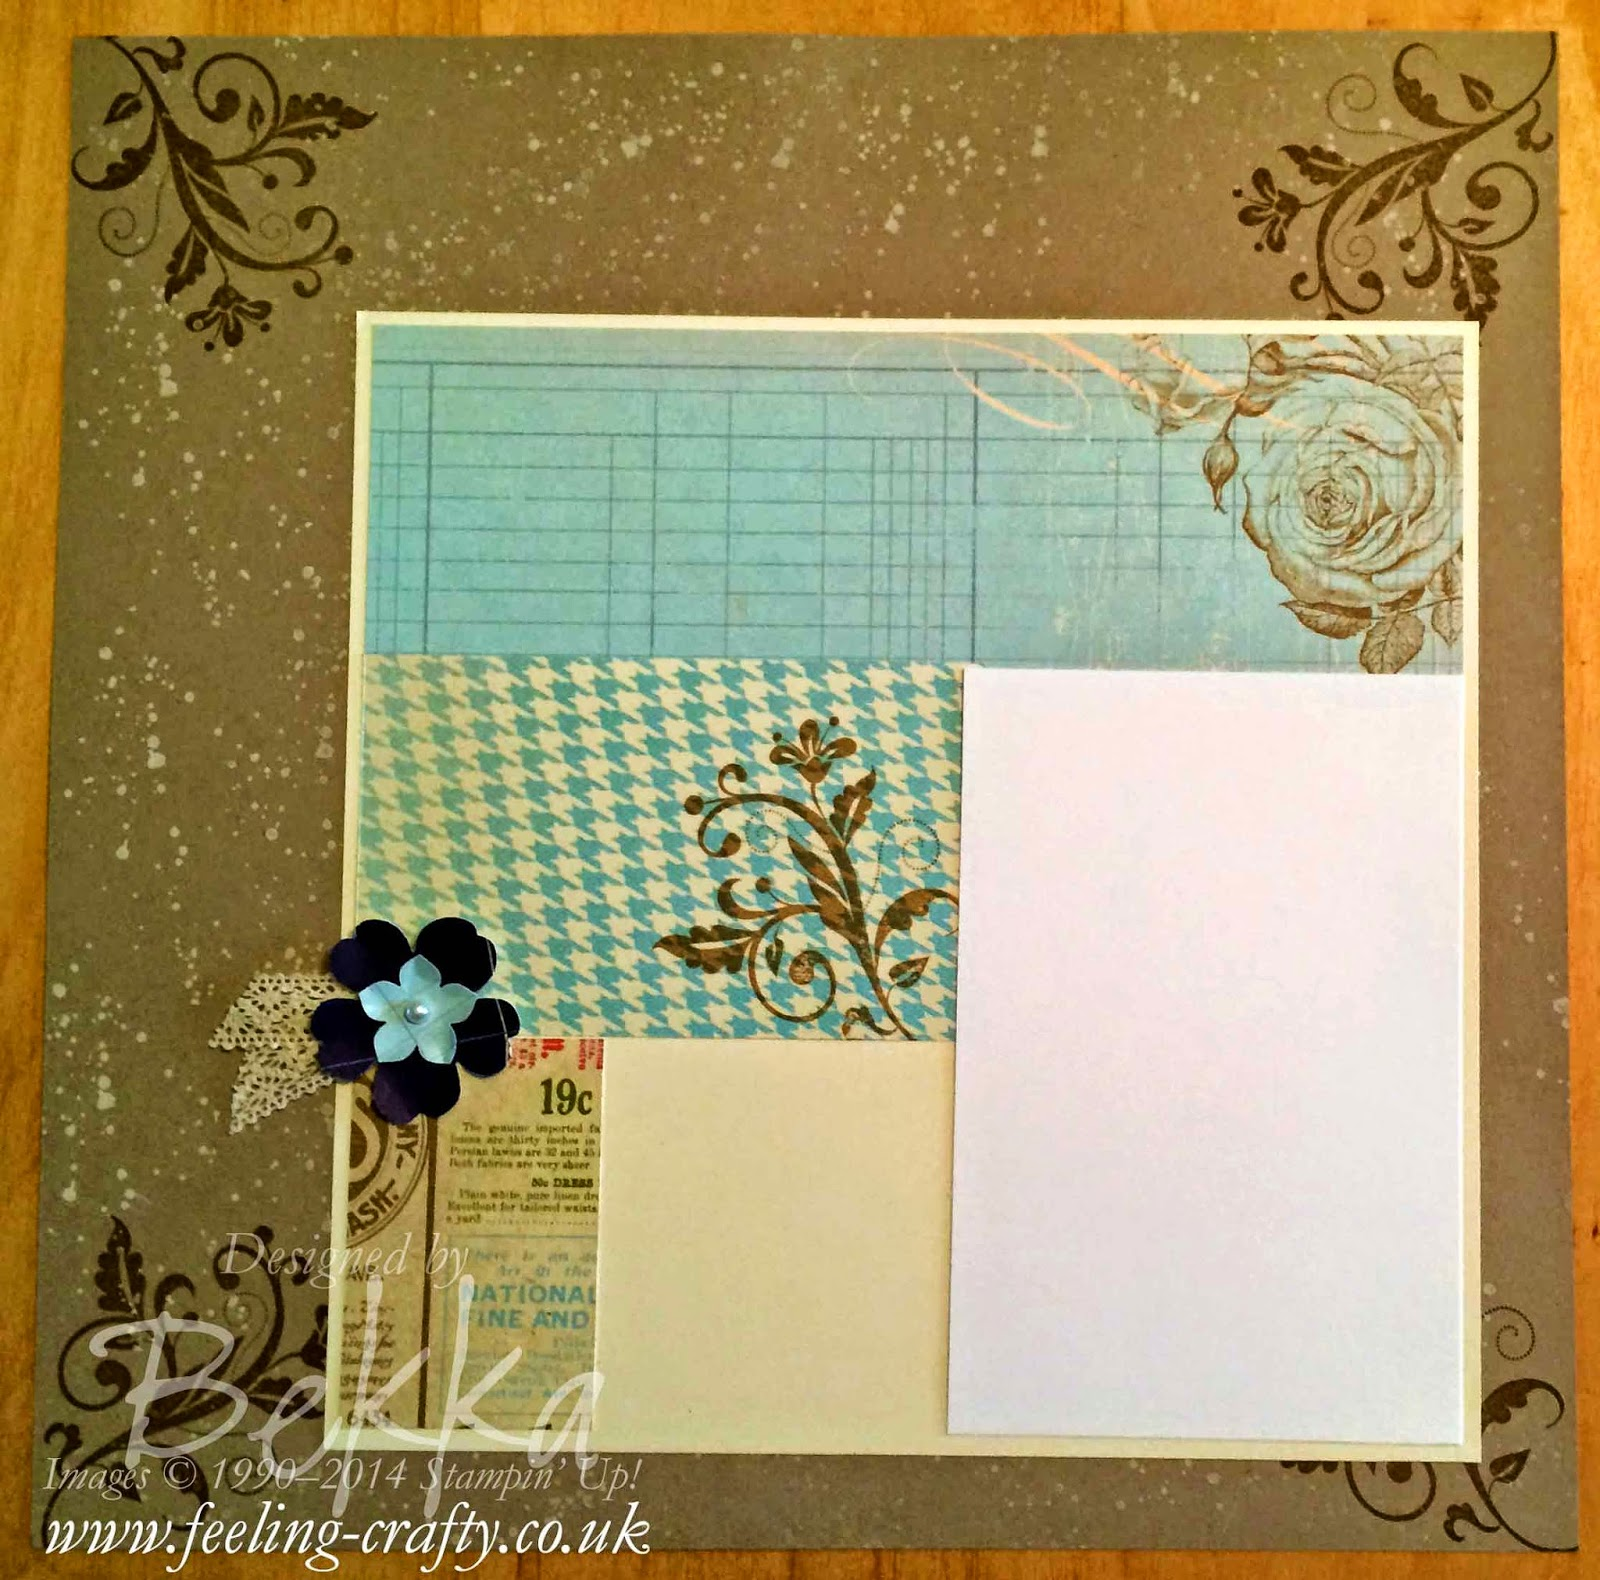 Scrapbook Page made using Stampin' Up! Supplies - available in the UK here